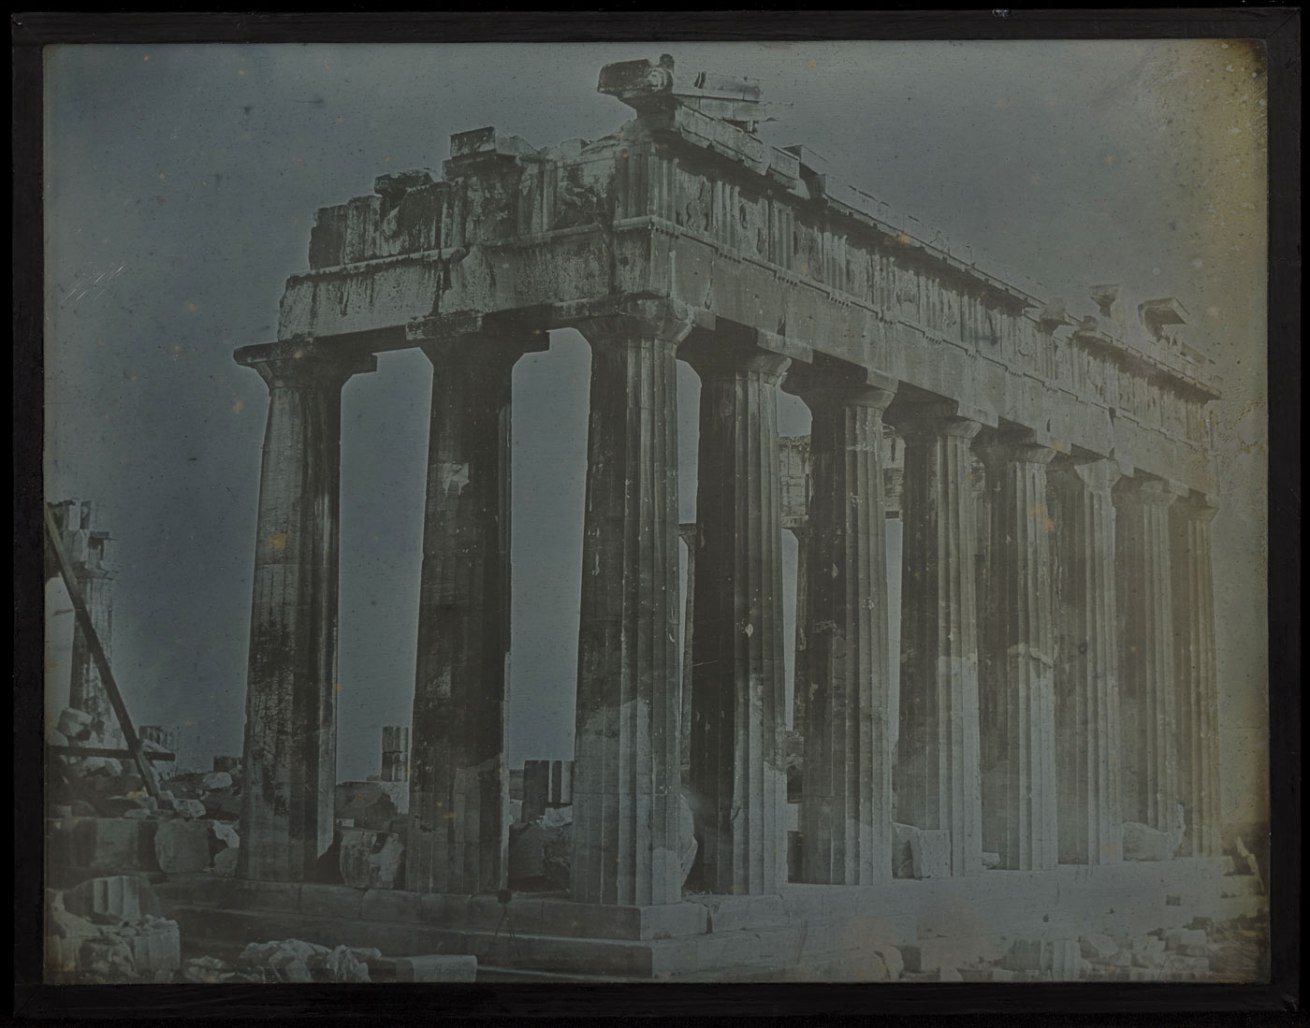 Fotó: Joseph-Philibert Girault de Prangey (French, 1804-1892)<br />Facade and North Colonnade of the Parthenon on the Acropolis, Athens<br />1842<br />Daguerreotype<br />Whole plate<br />Image: 18.8 x 24 cm (7 3/8 x 9 7/16 in.)<br />Object (whole): 18.8 x 24 cm (7 3/8 x 9 7/16 in.)<br />The J. Paul Getty Museum, Los Angeles